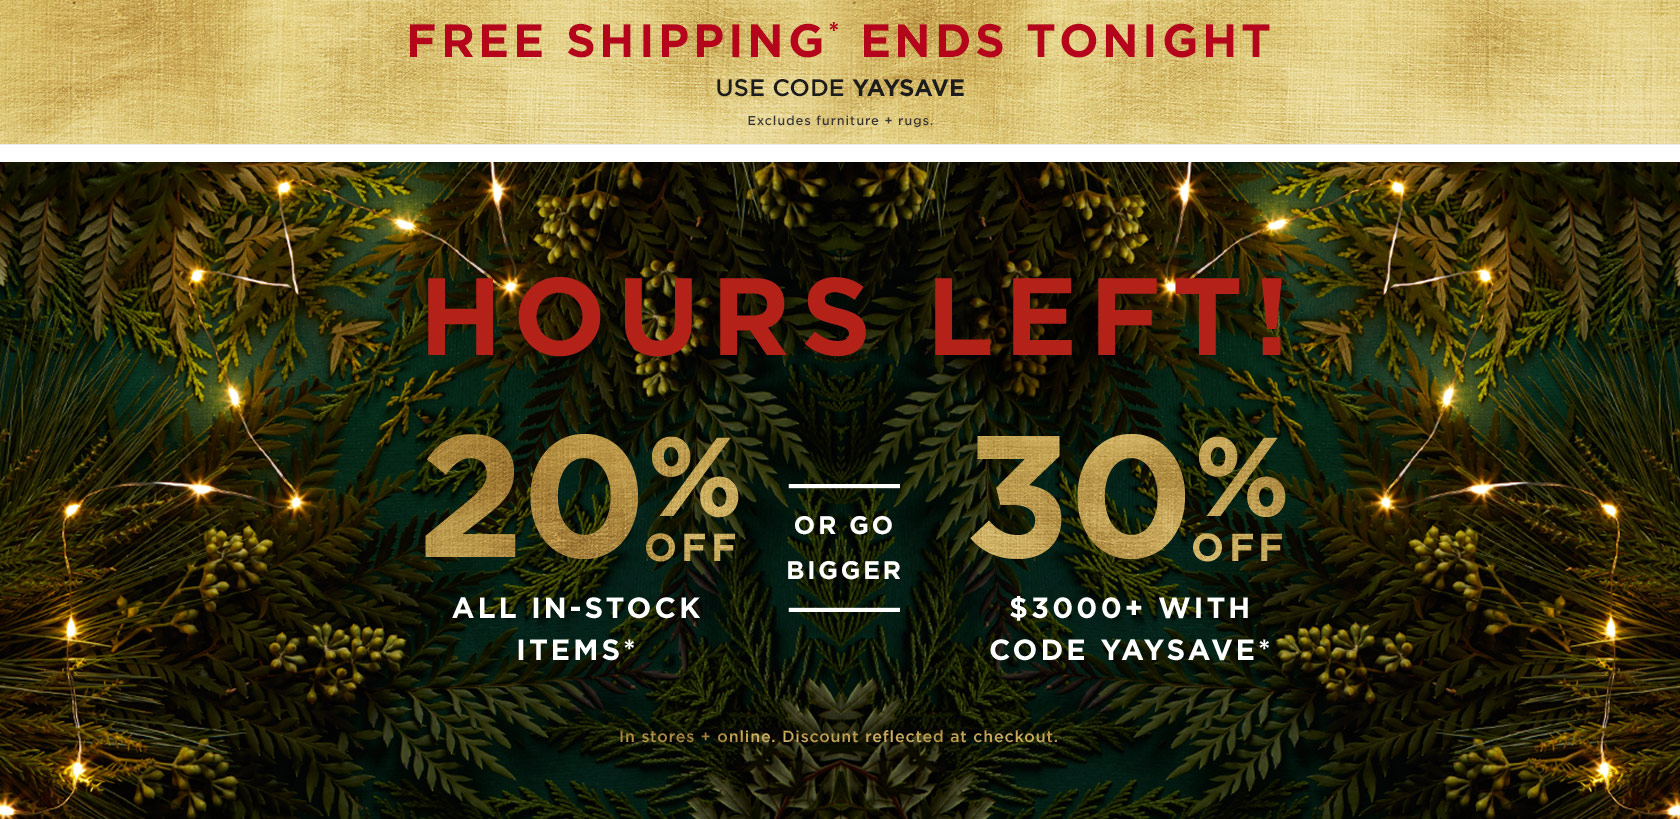 Hours Left! 20% Off In-Stock Items. Prices As Marked. Or 30% Off $3000+ With Code YAYSAVE